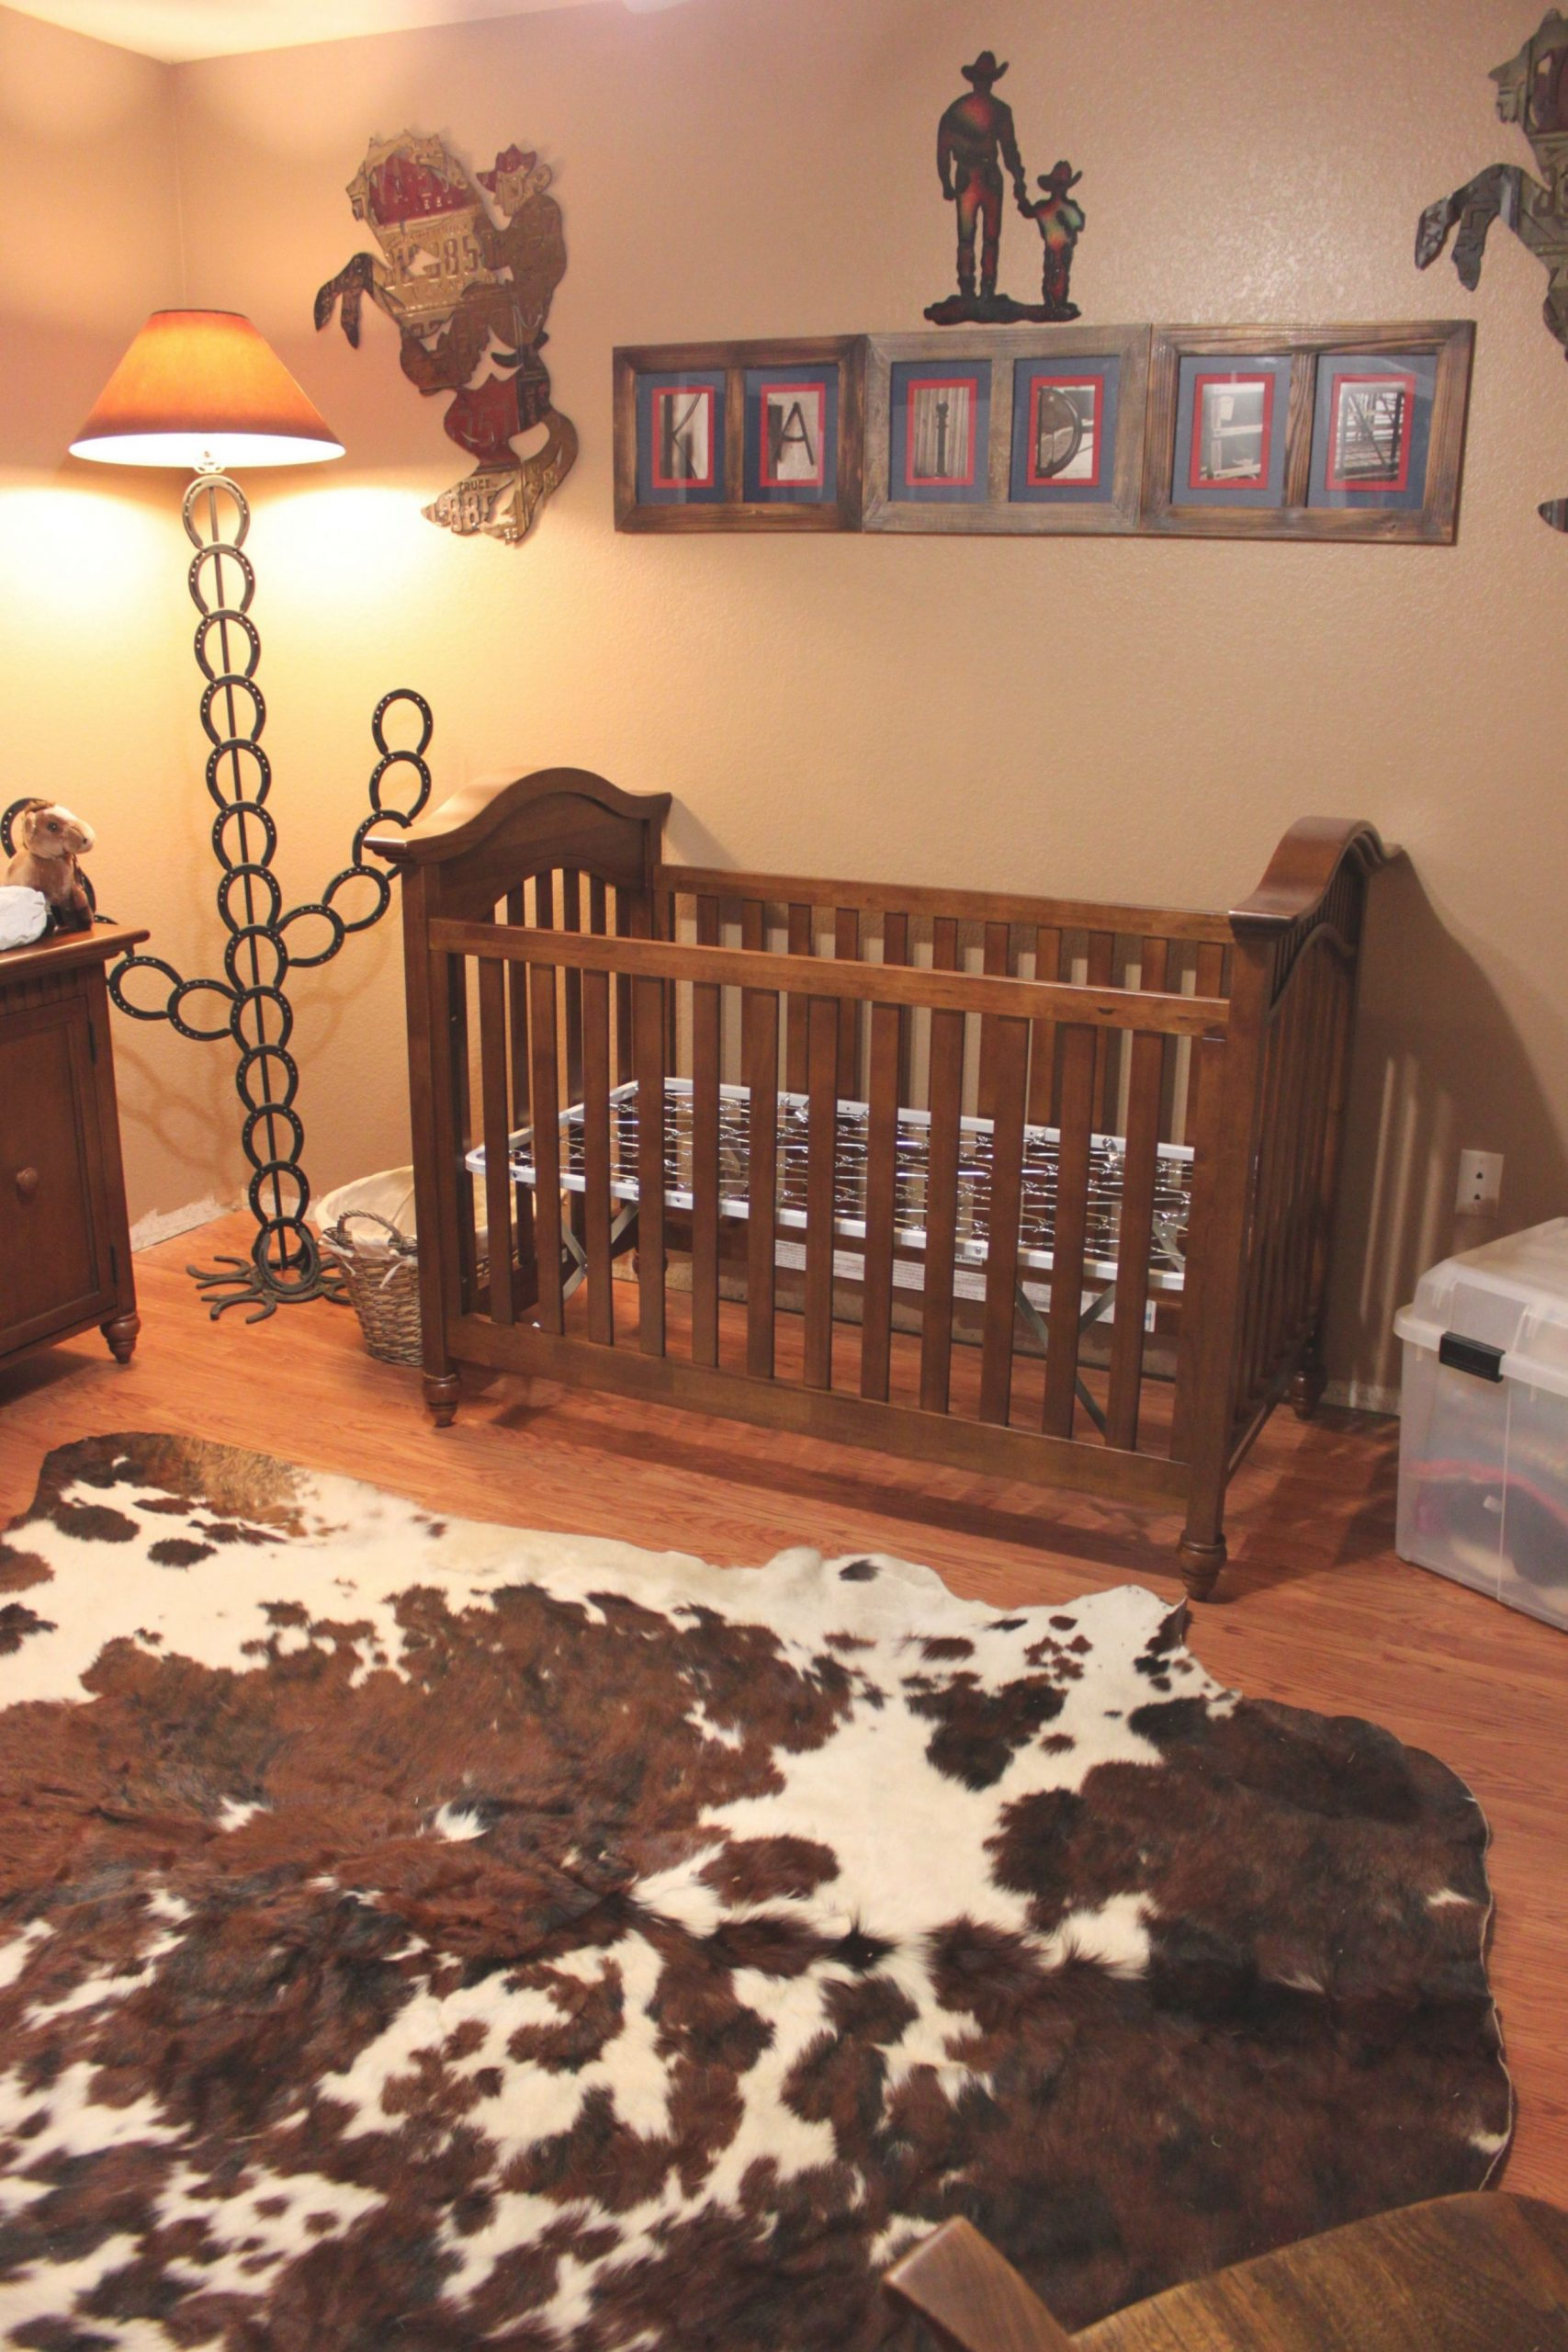 Top 8 Wonderful Horse Theme Bedroom Decorating Ideas | Boy within Luxury Baby Bedroom Decorating Ideas